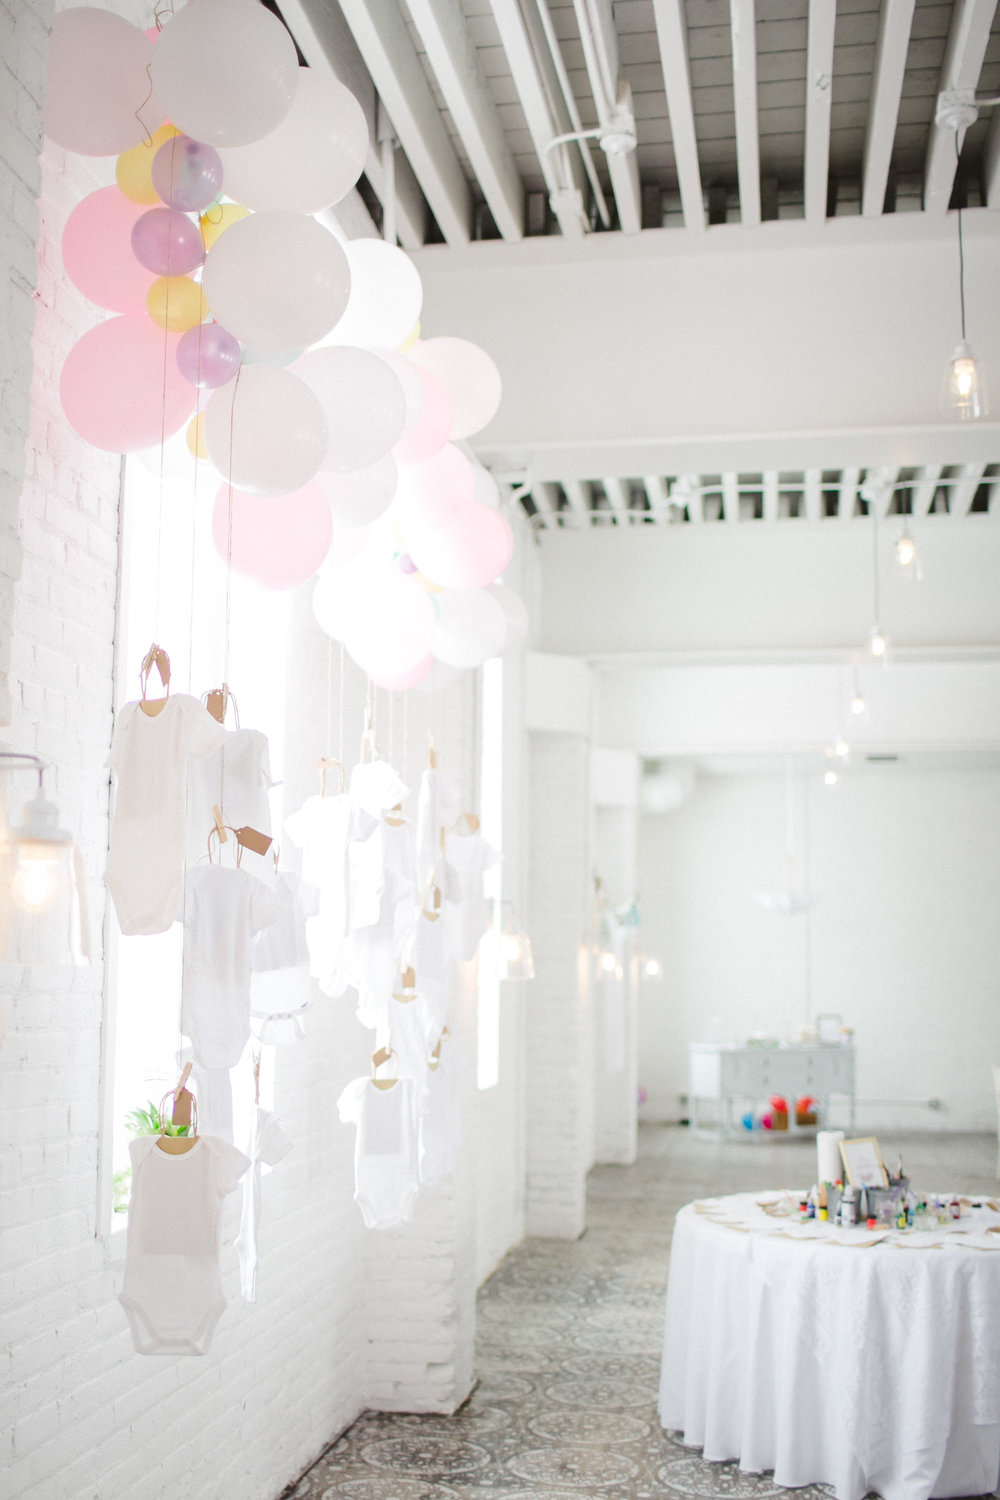 by Aimee Jobe Luminary Fern Brainerd Baby Shower Space-13.jpg